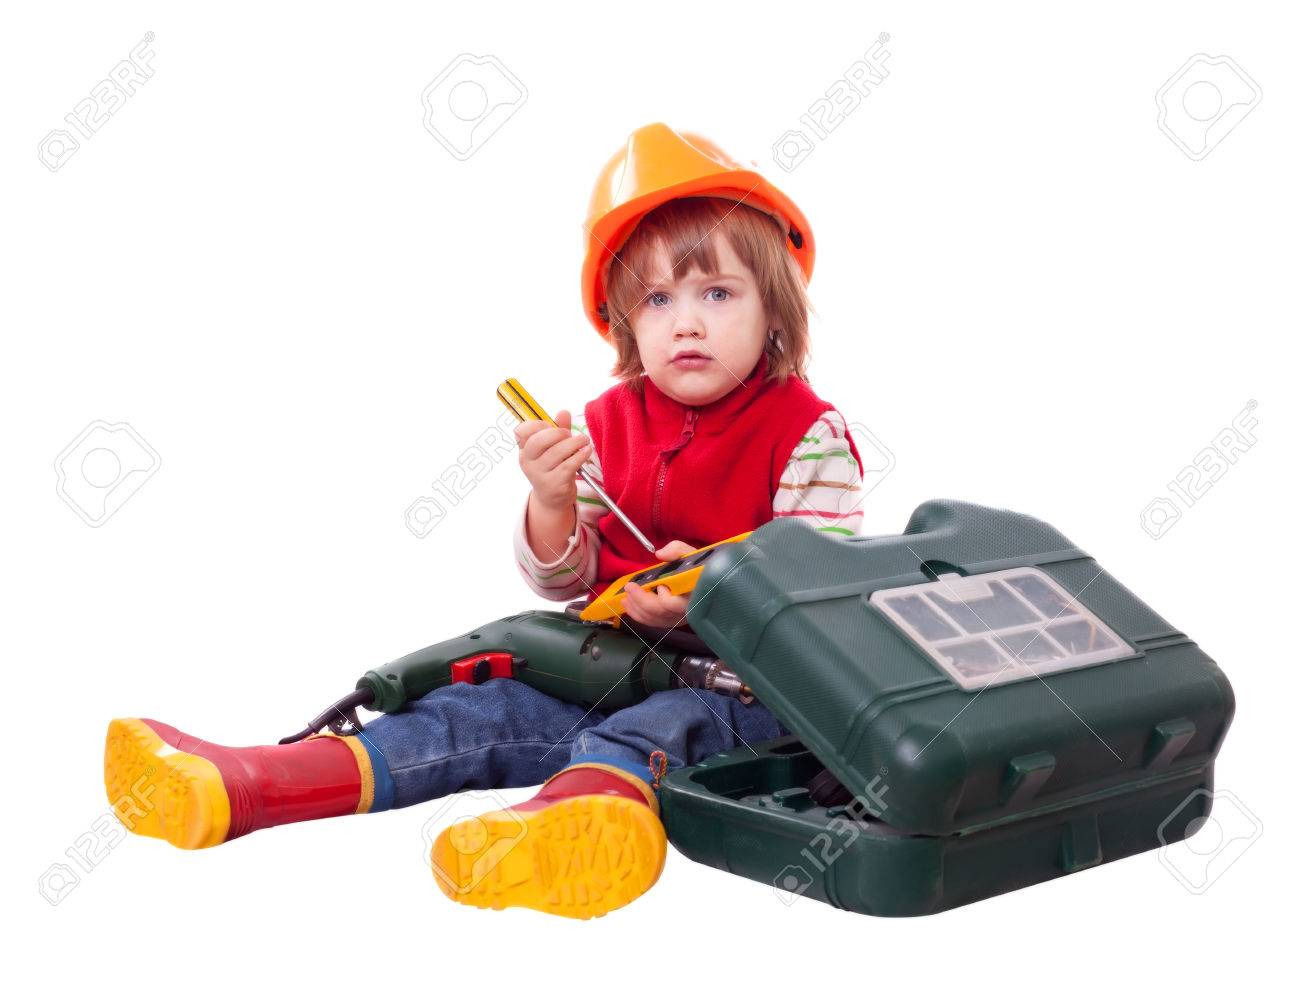 70d378cd523 serious baby builder in hardhat with working tools. Isolated over white  Stock Photo - 36292274